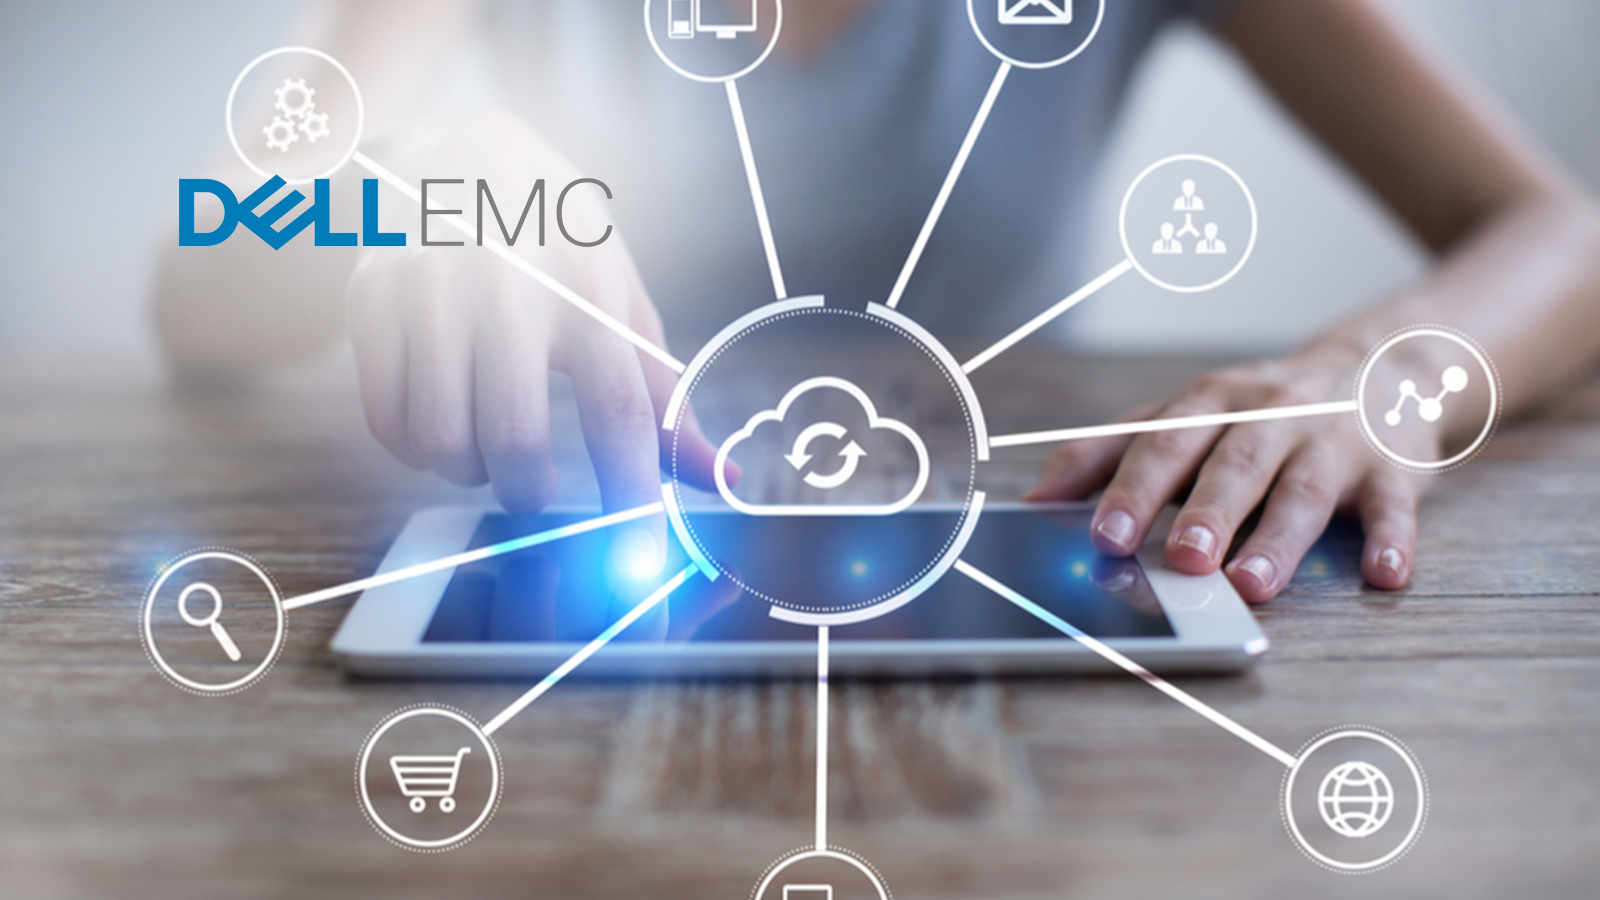 Dell EMC Unveils Broad Enhancements to Cloud-Enabled